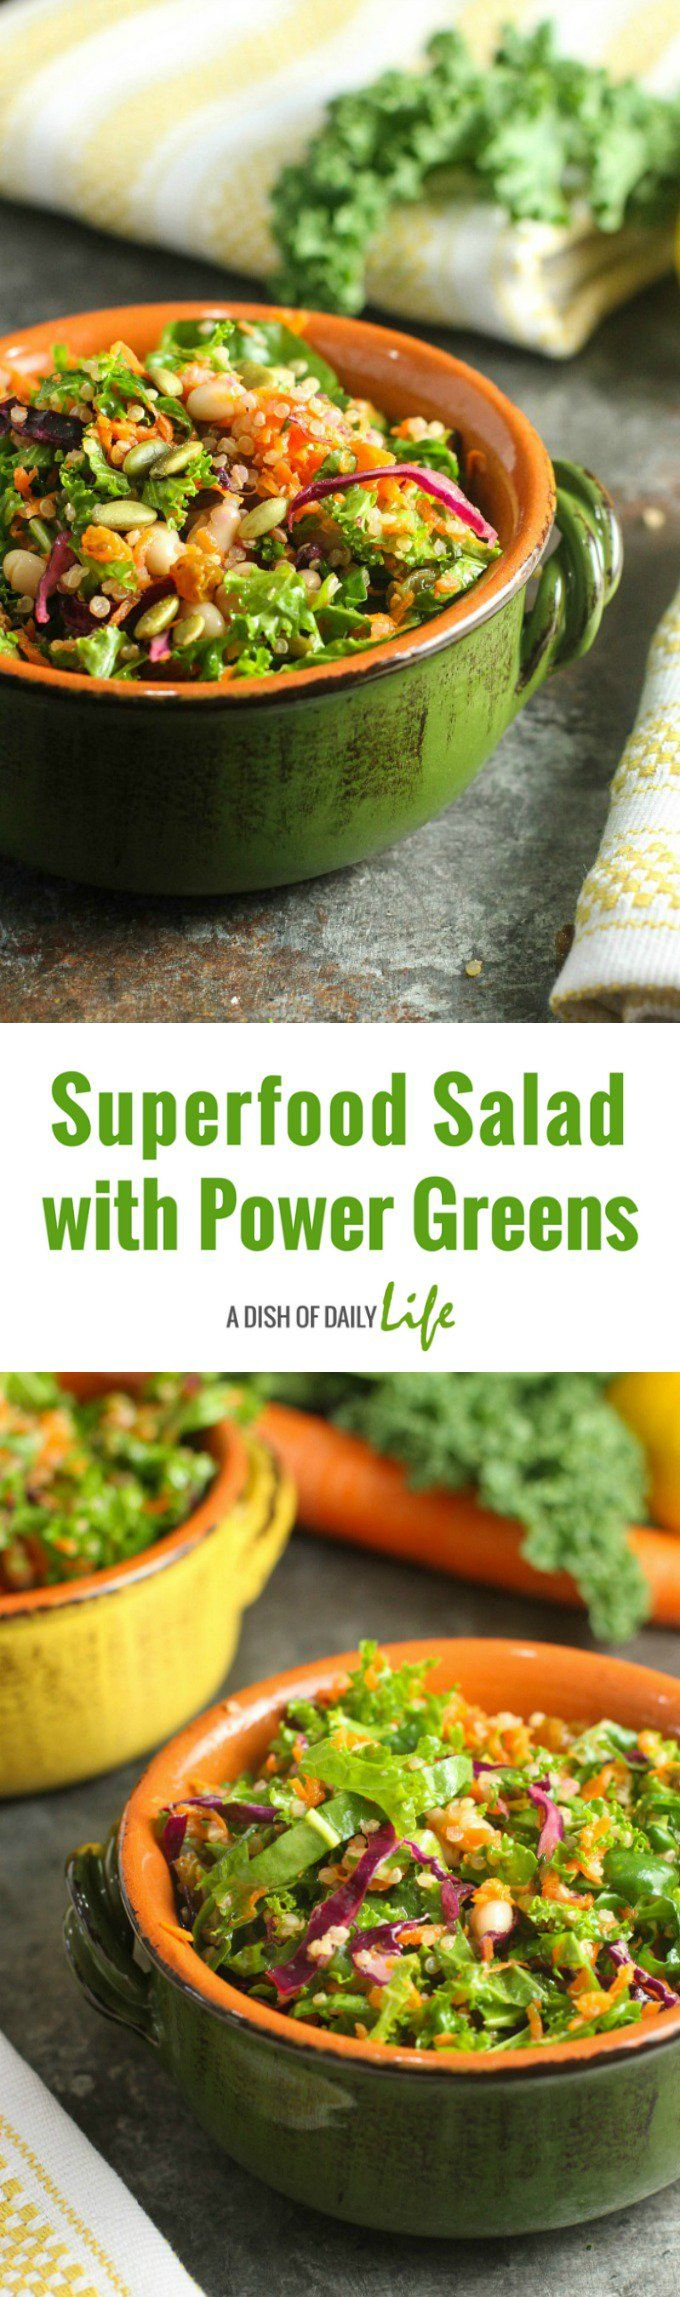 Healthy meets delicious with this Superfood Salad with Power Greens!Perfect for lunch or as a side for dinner...this salad gets rave reviews! #ad @vigofoods